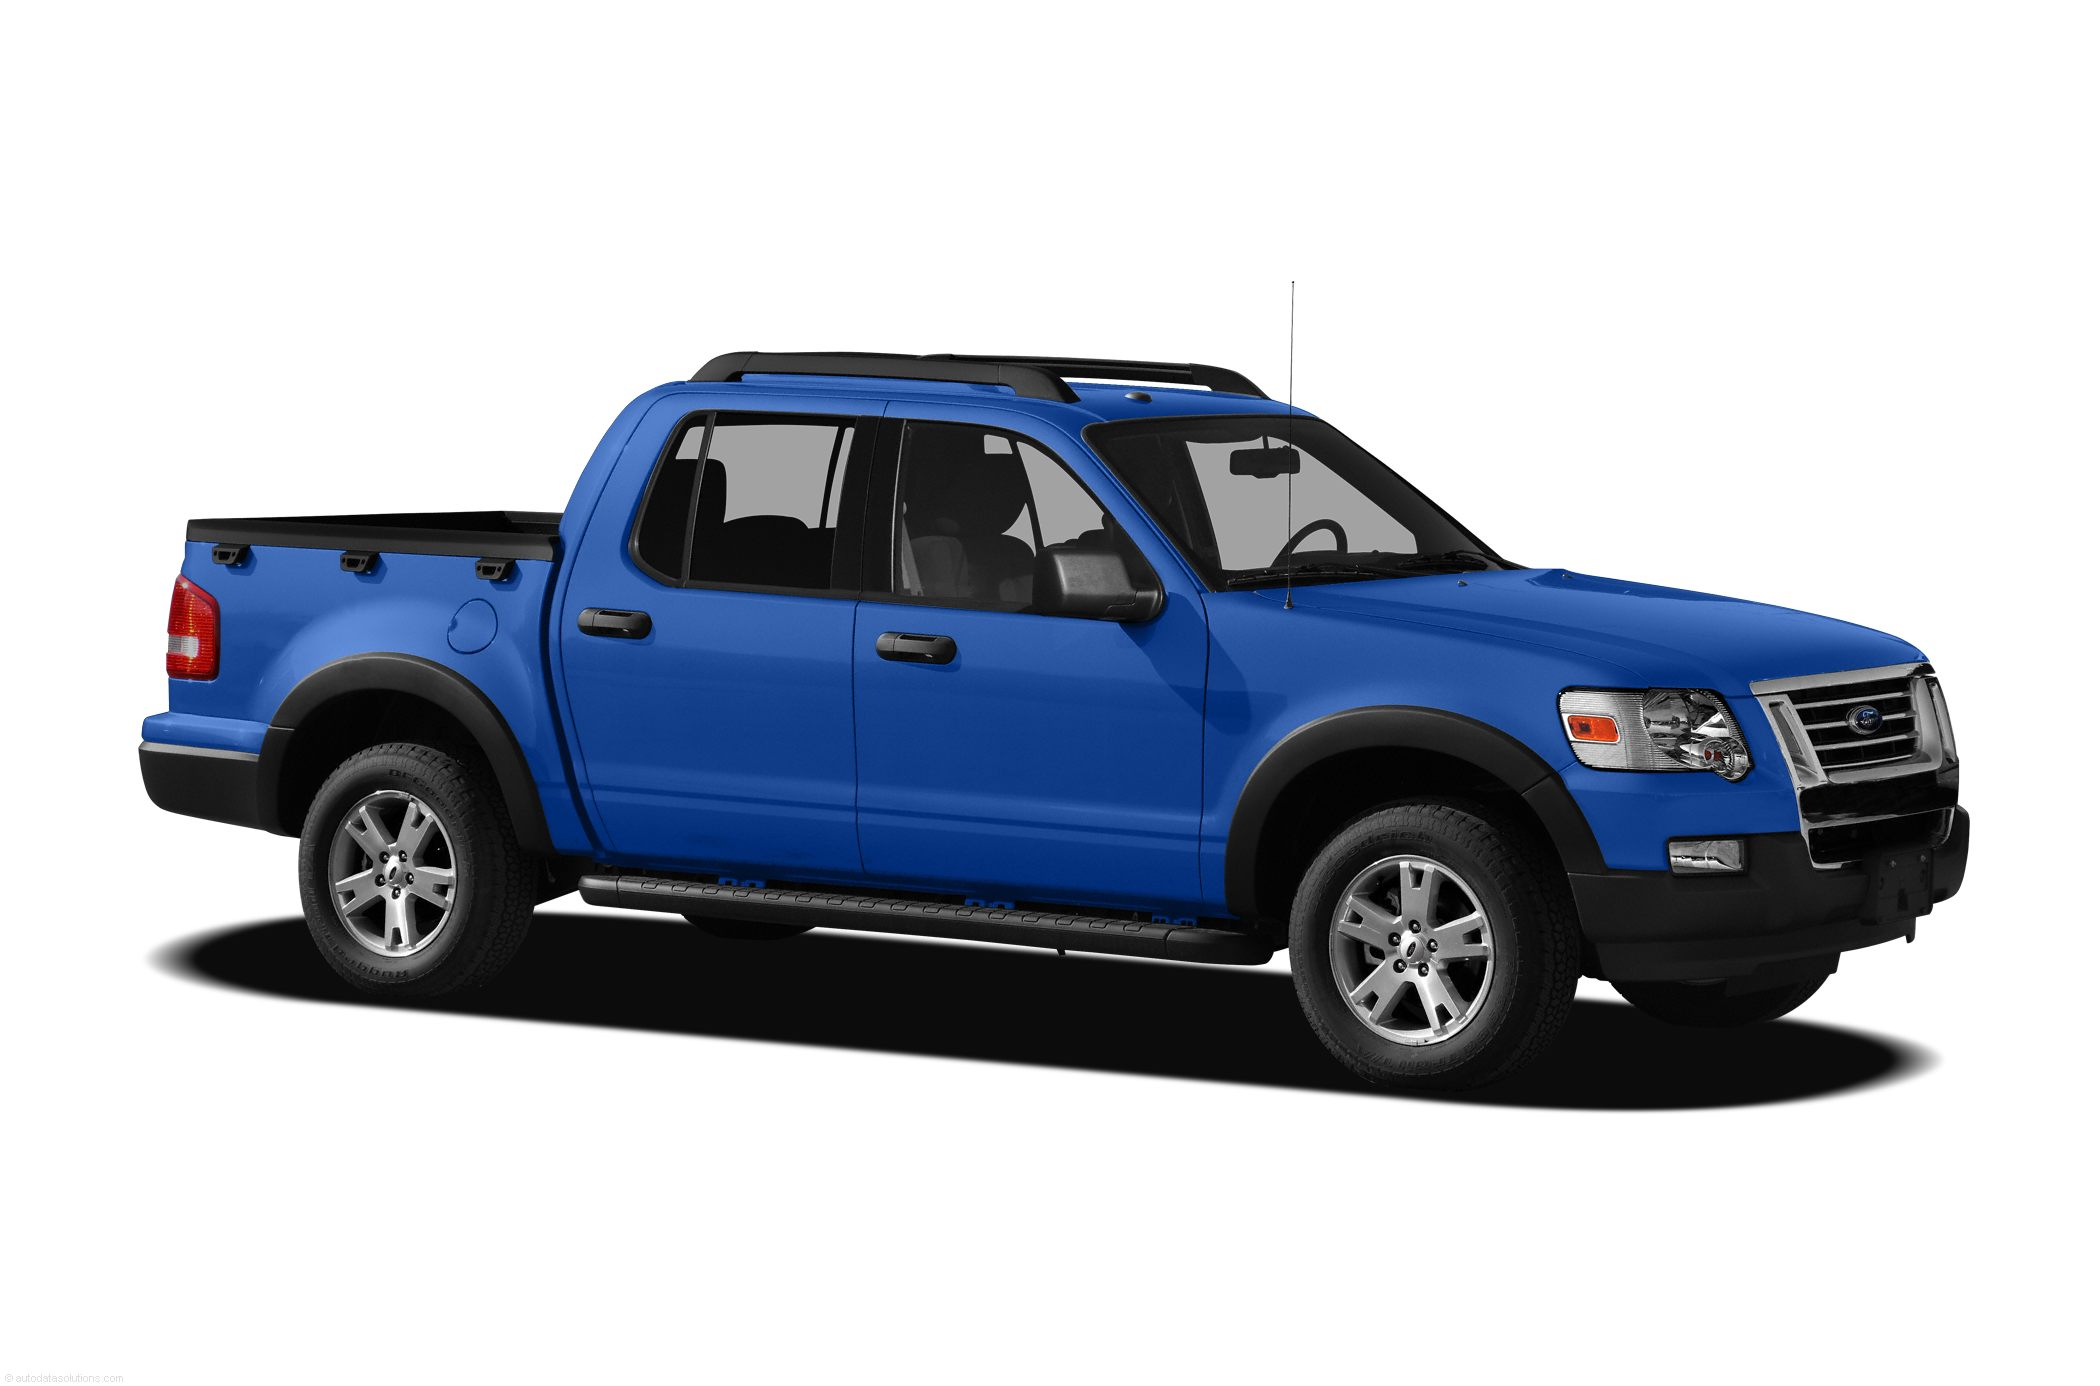 Ford Truck 2010 Photo 8